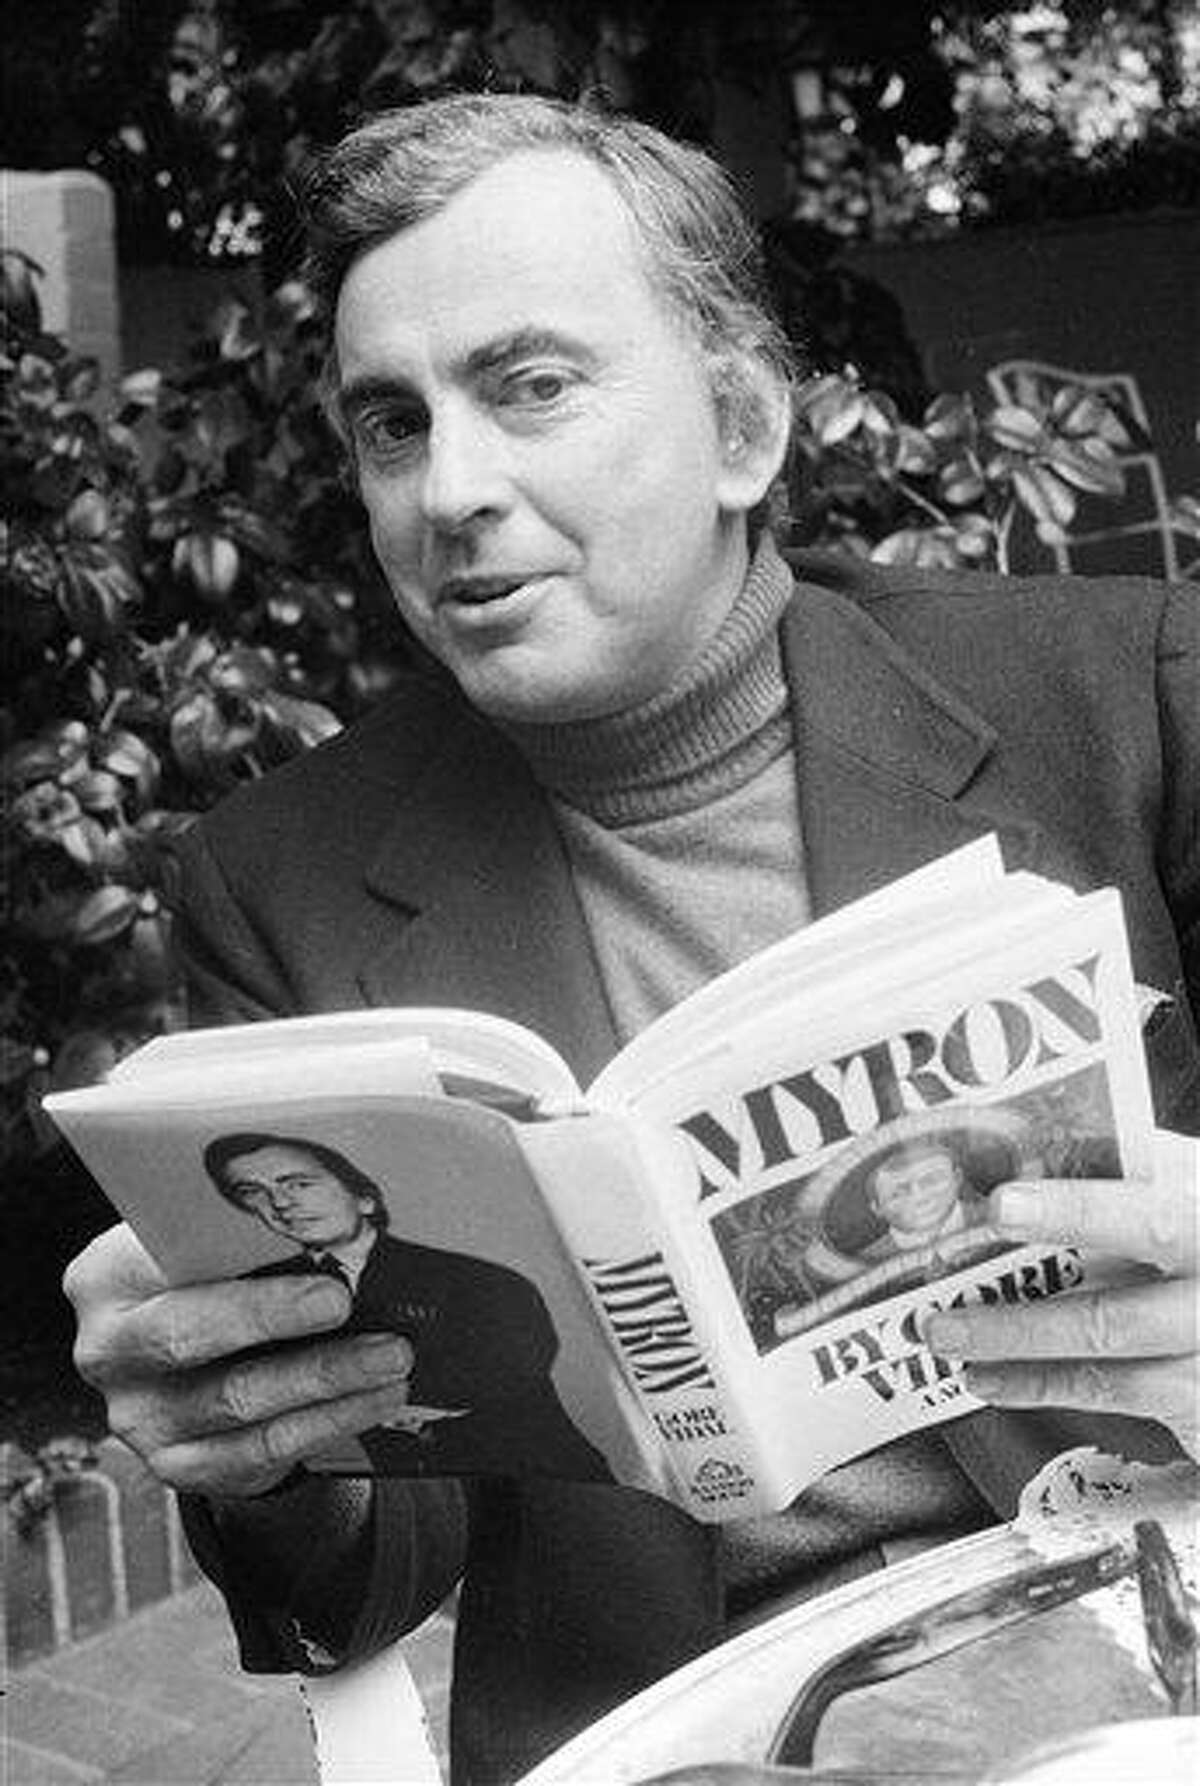 This 1977 file photo shows author Gore Vidal. Vidal died Tuesday at his home in Los Angeles. He was 86. Associated Press